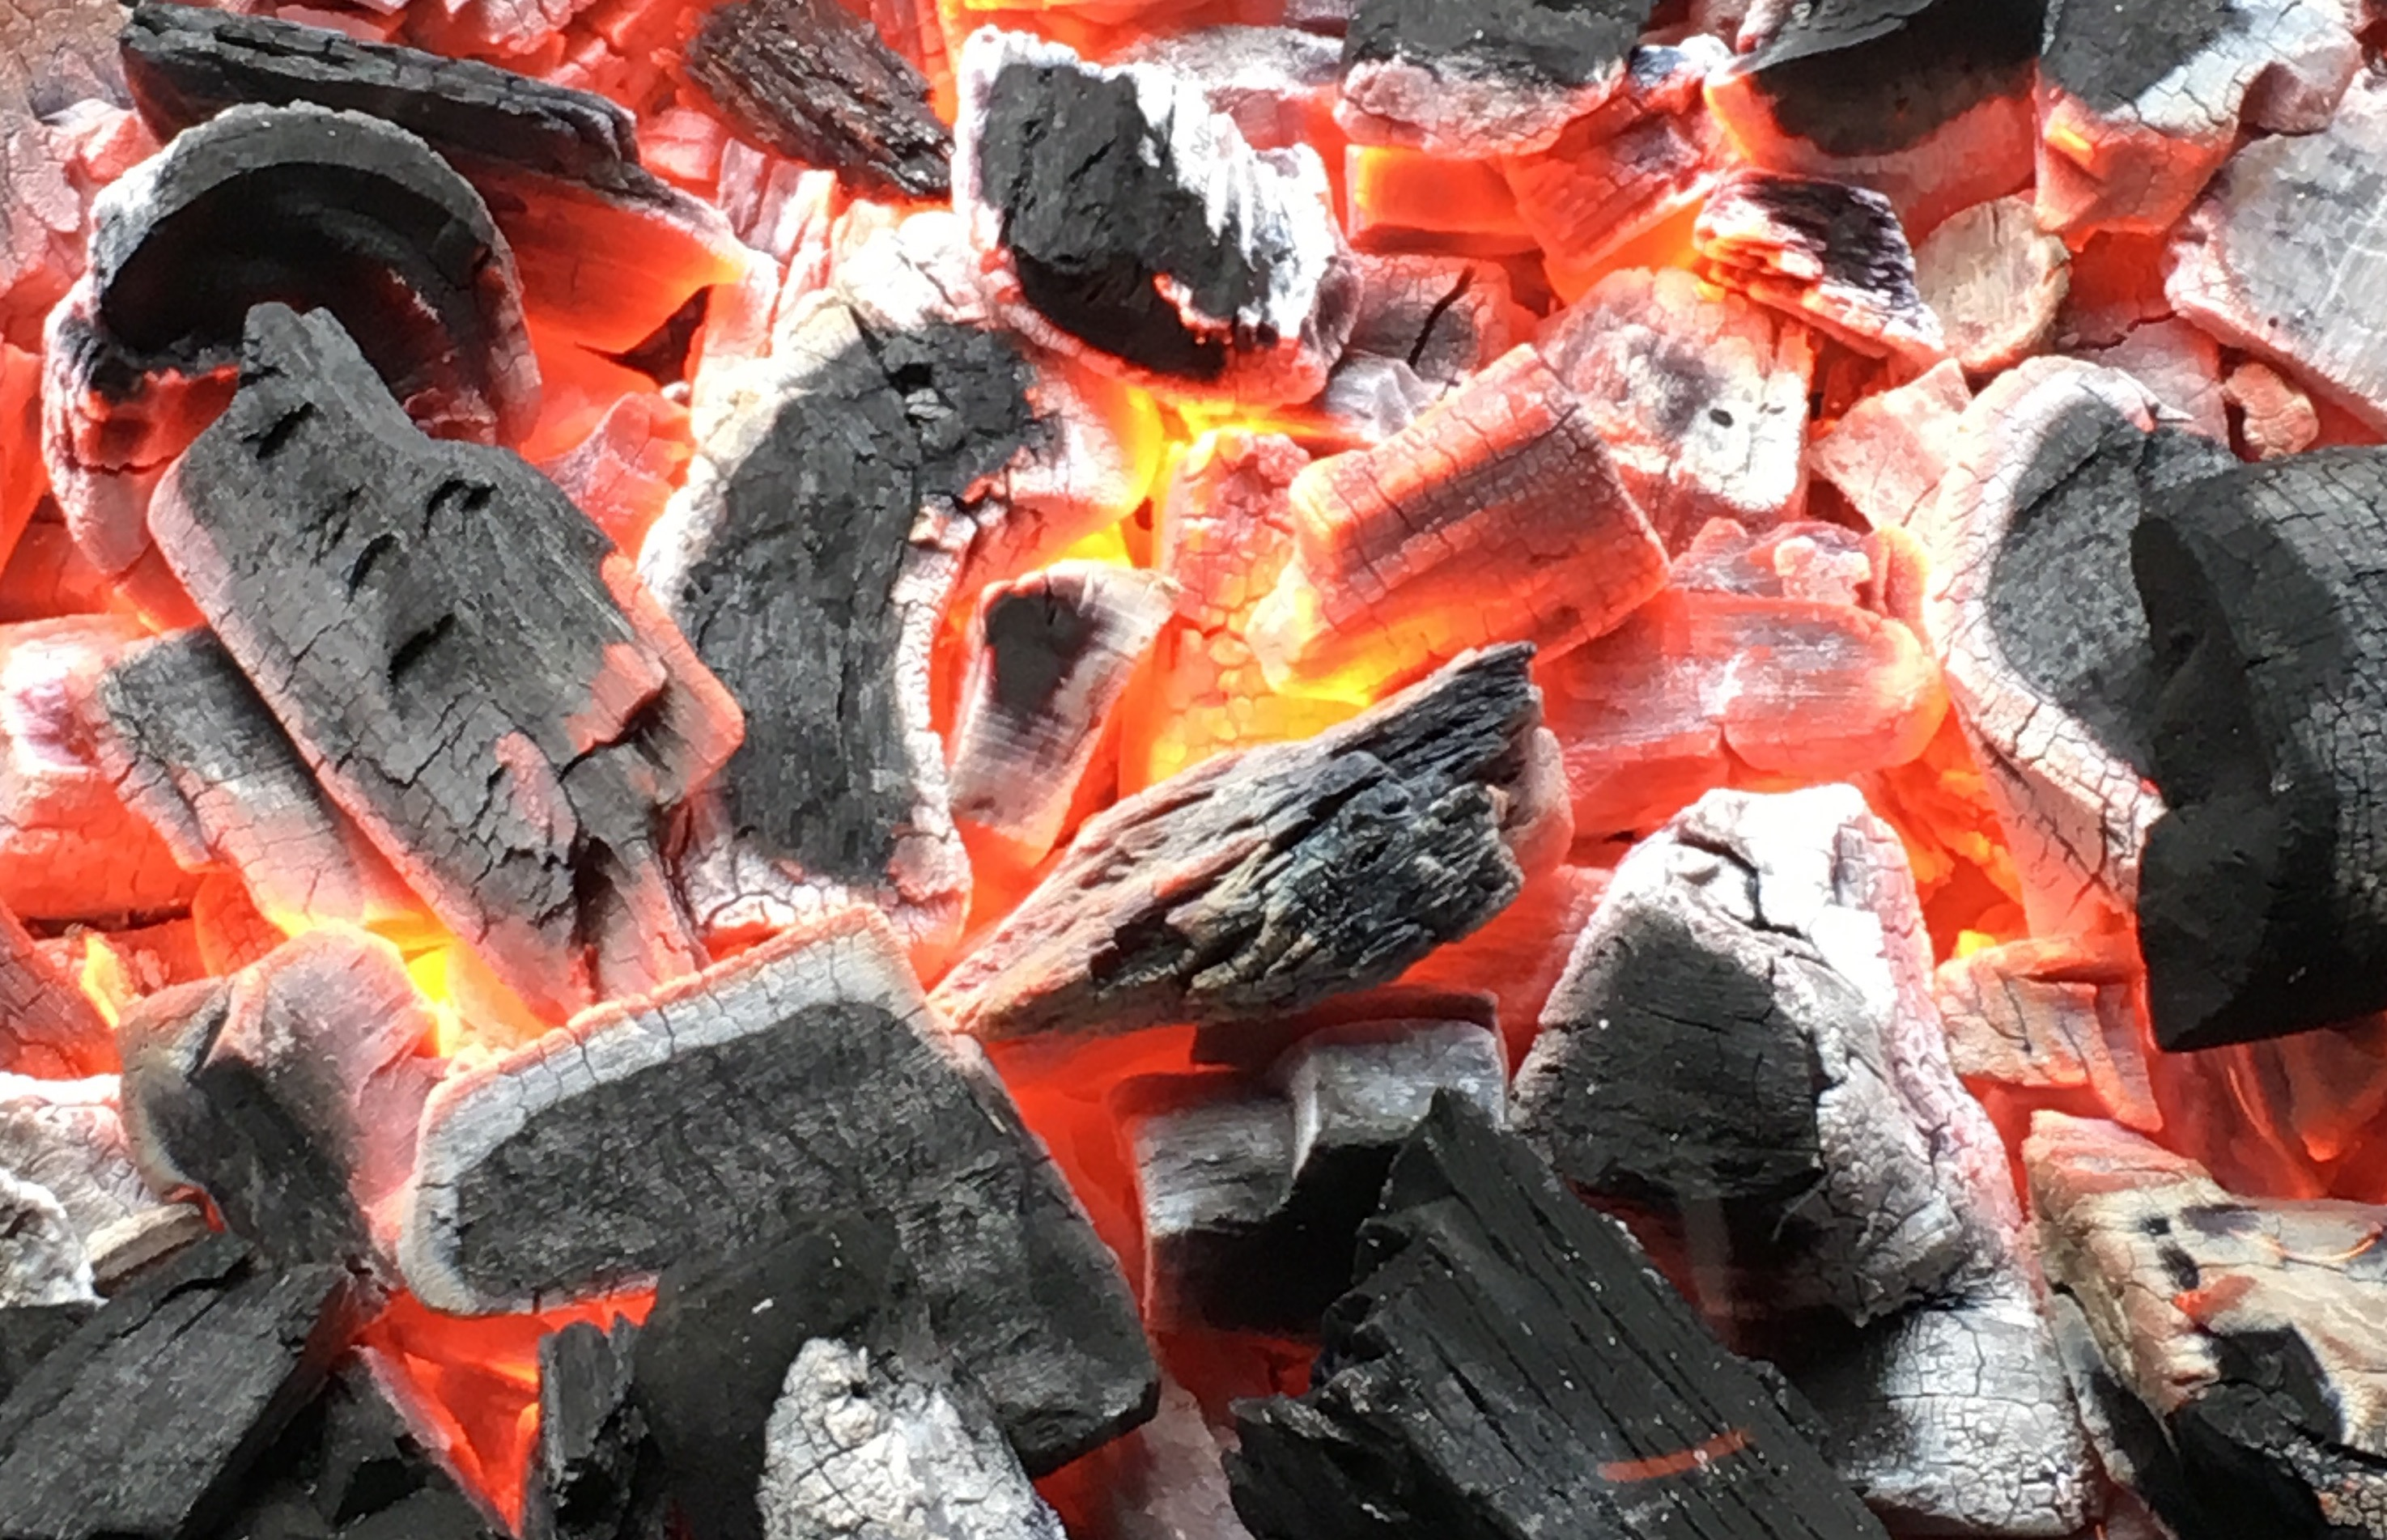 Glowing hot lump wood charcoal in Auckland